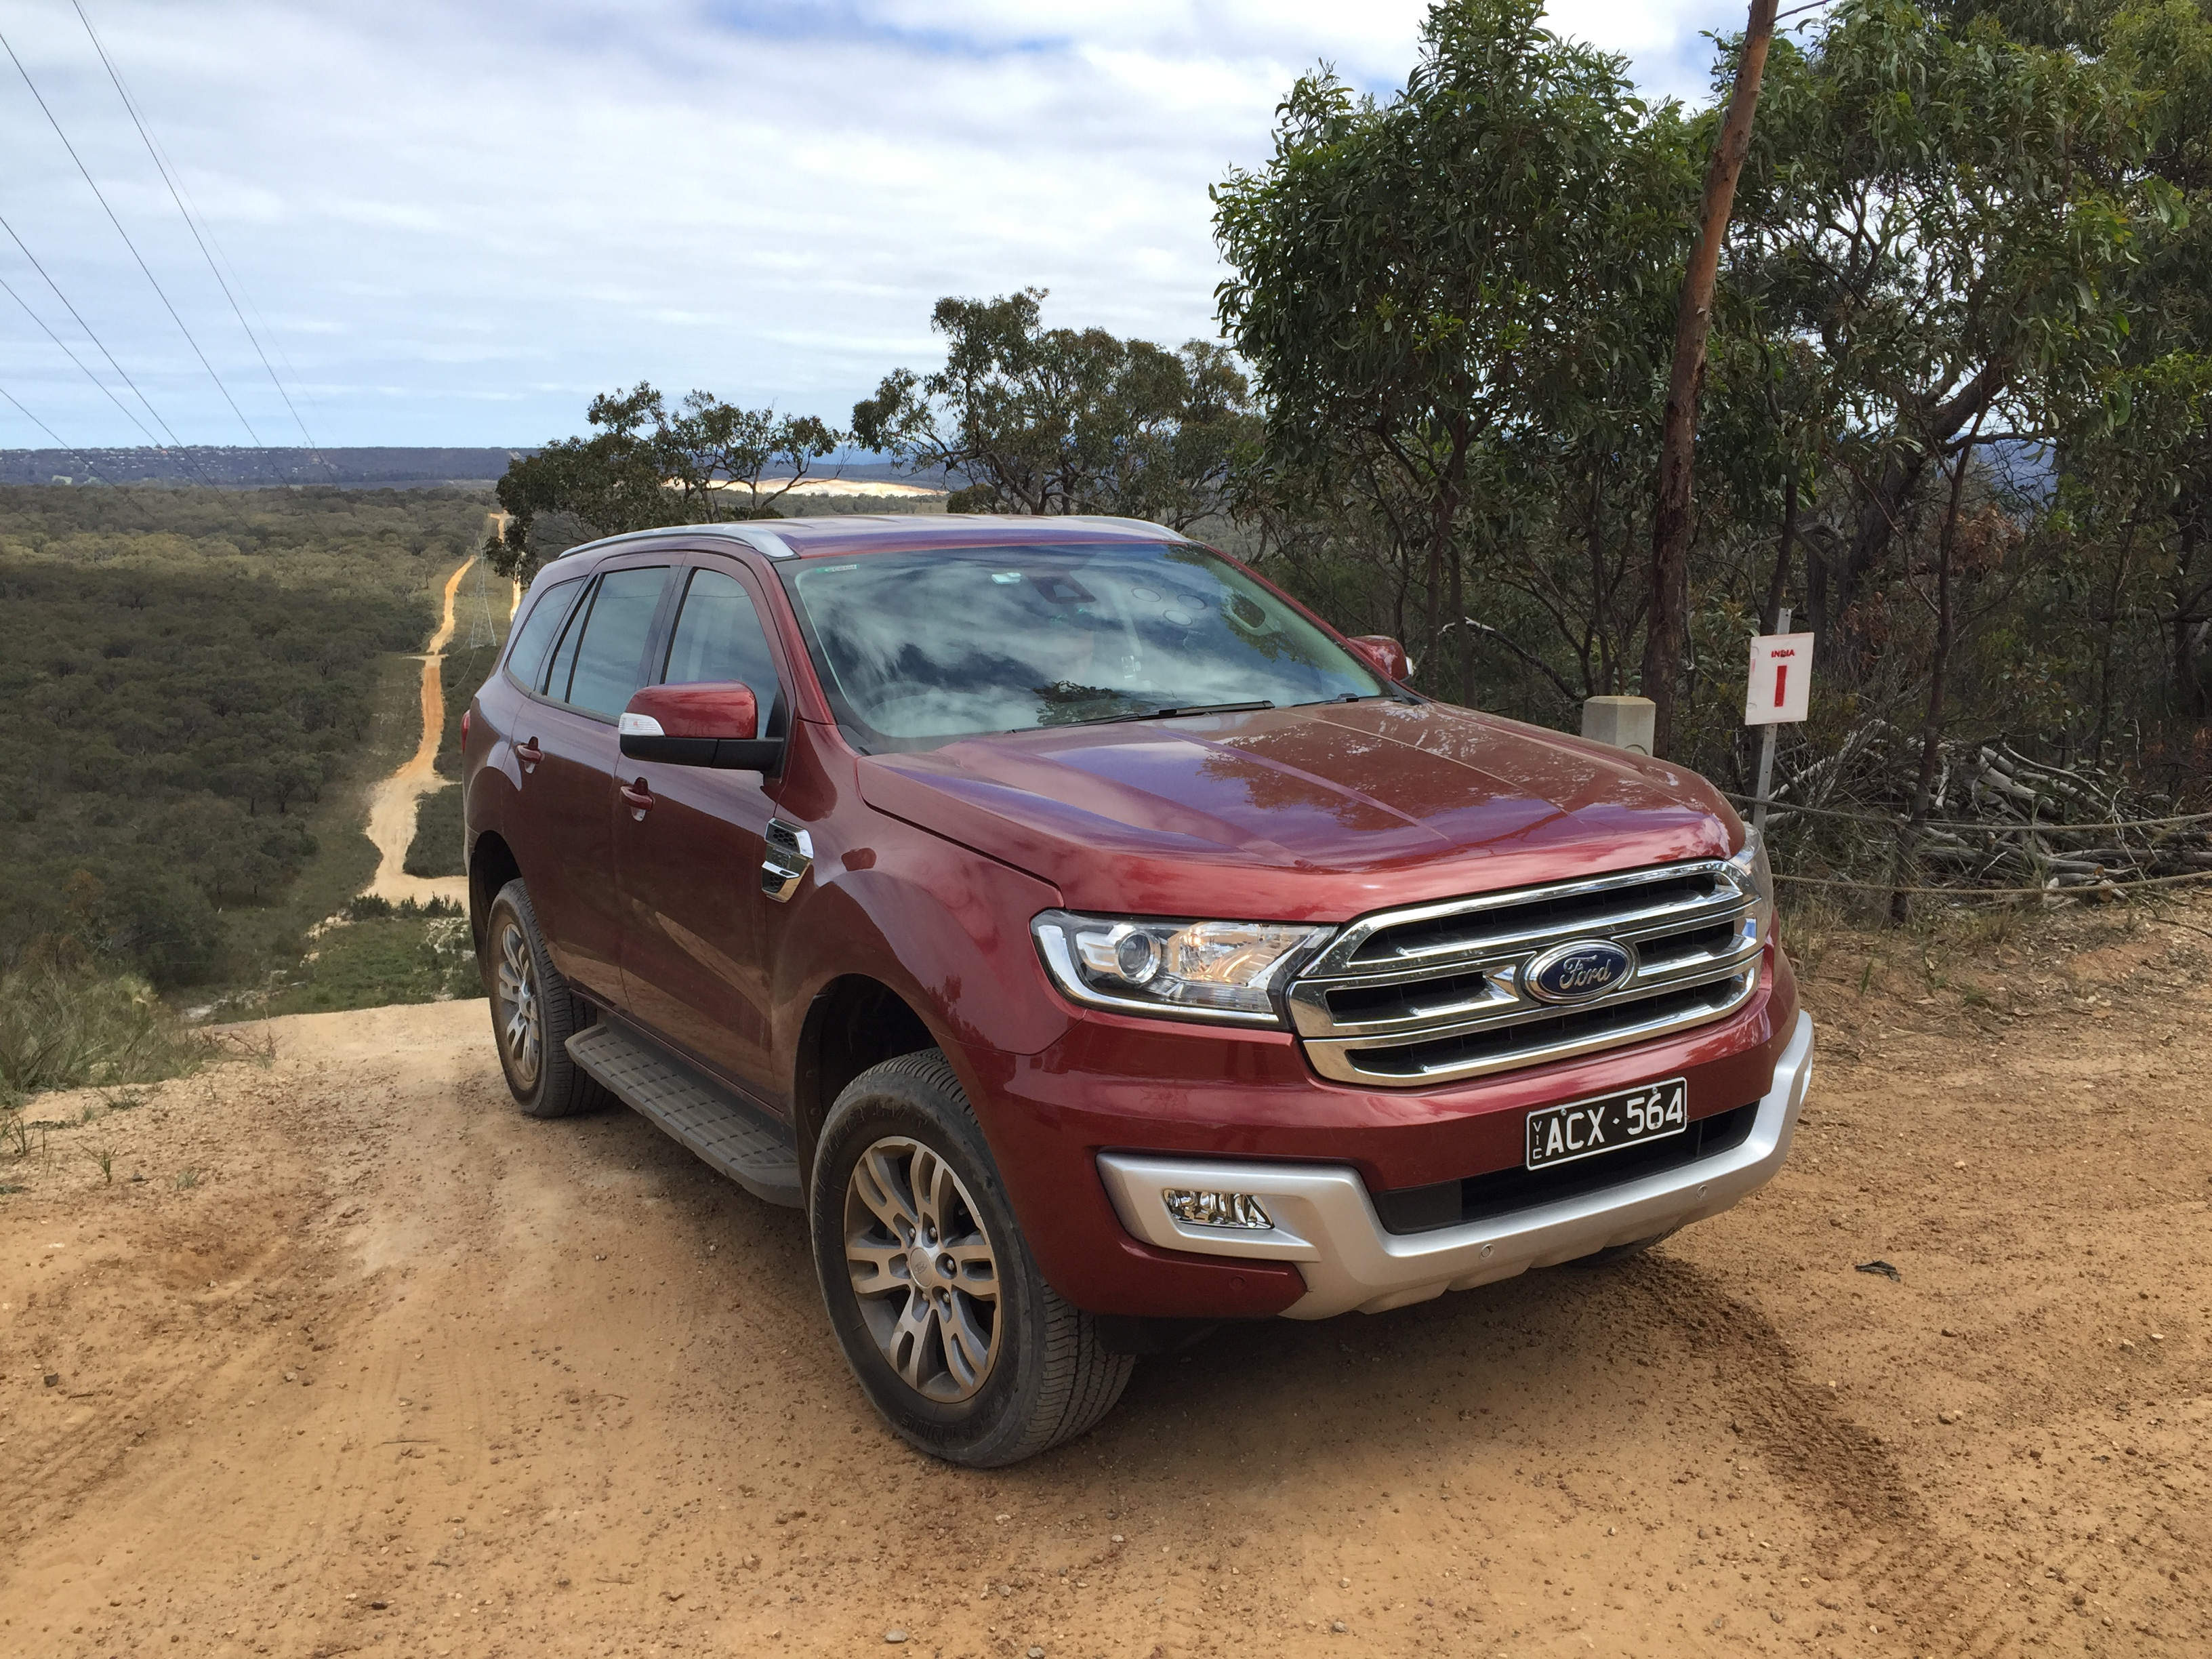 ford everest 2016 review - Car Hideout